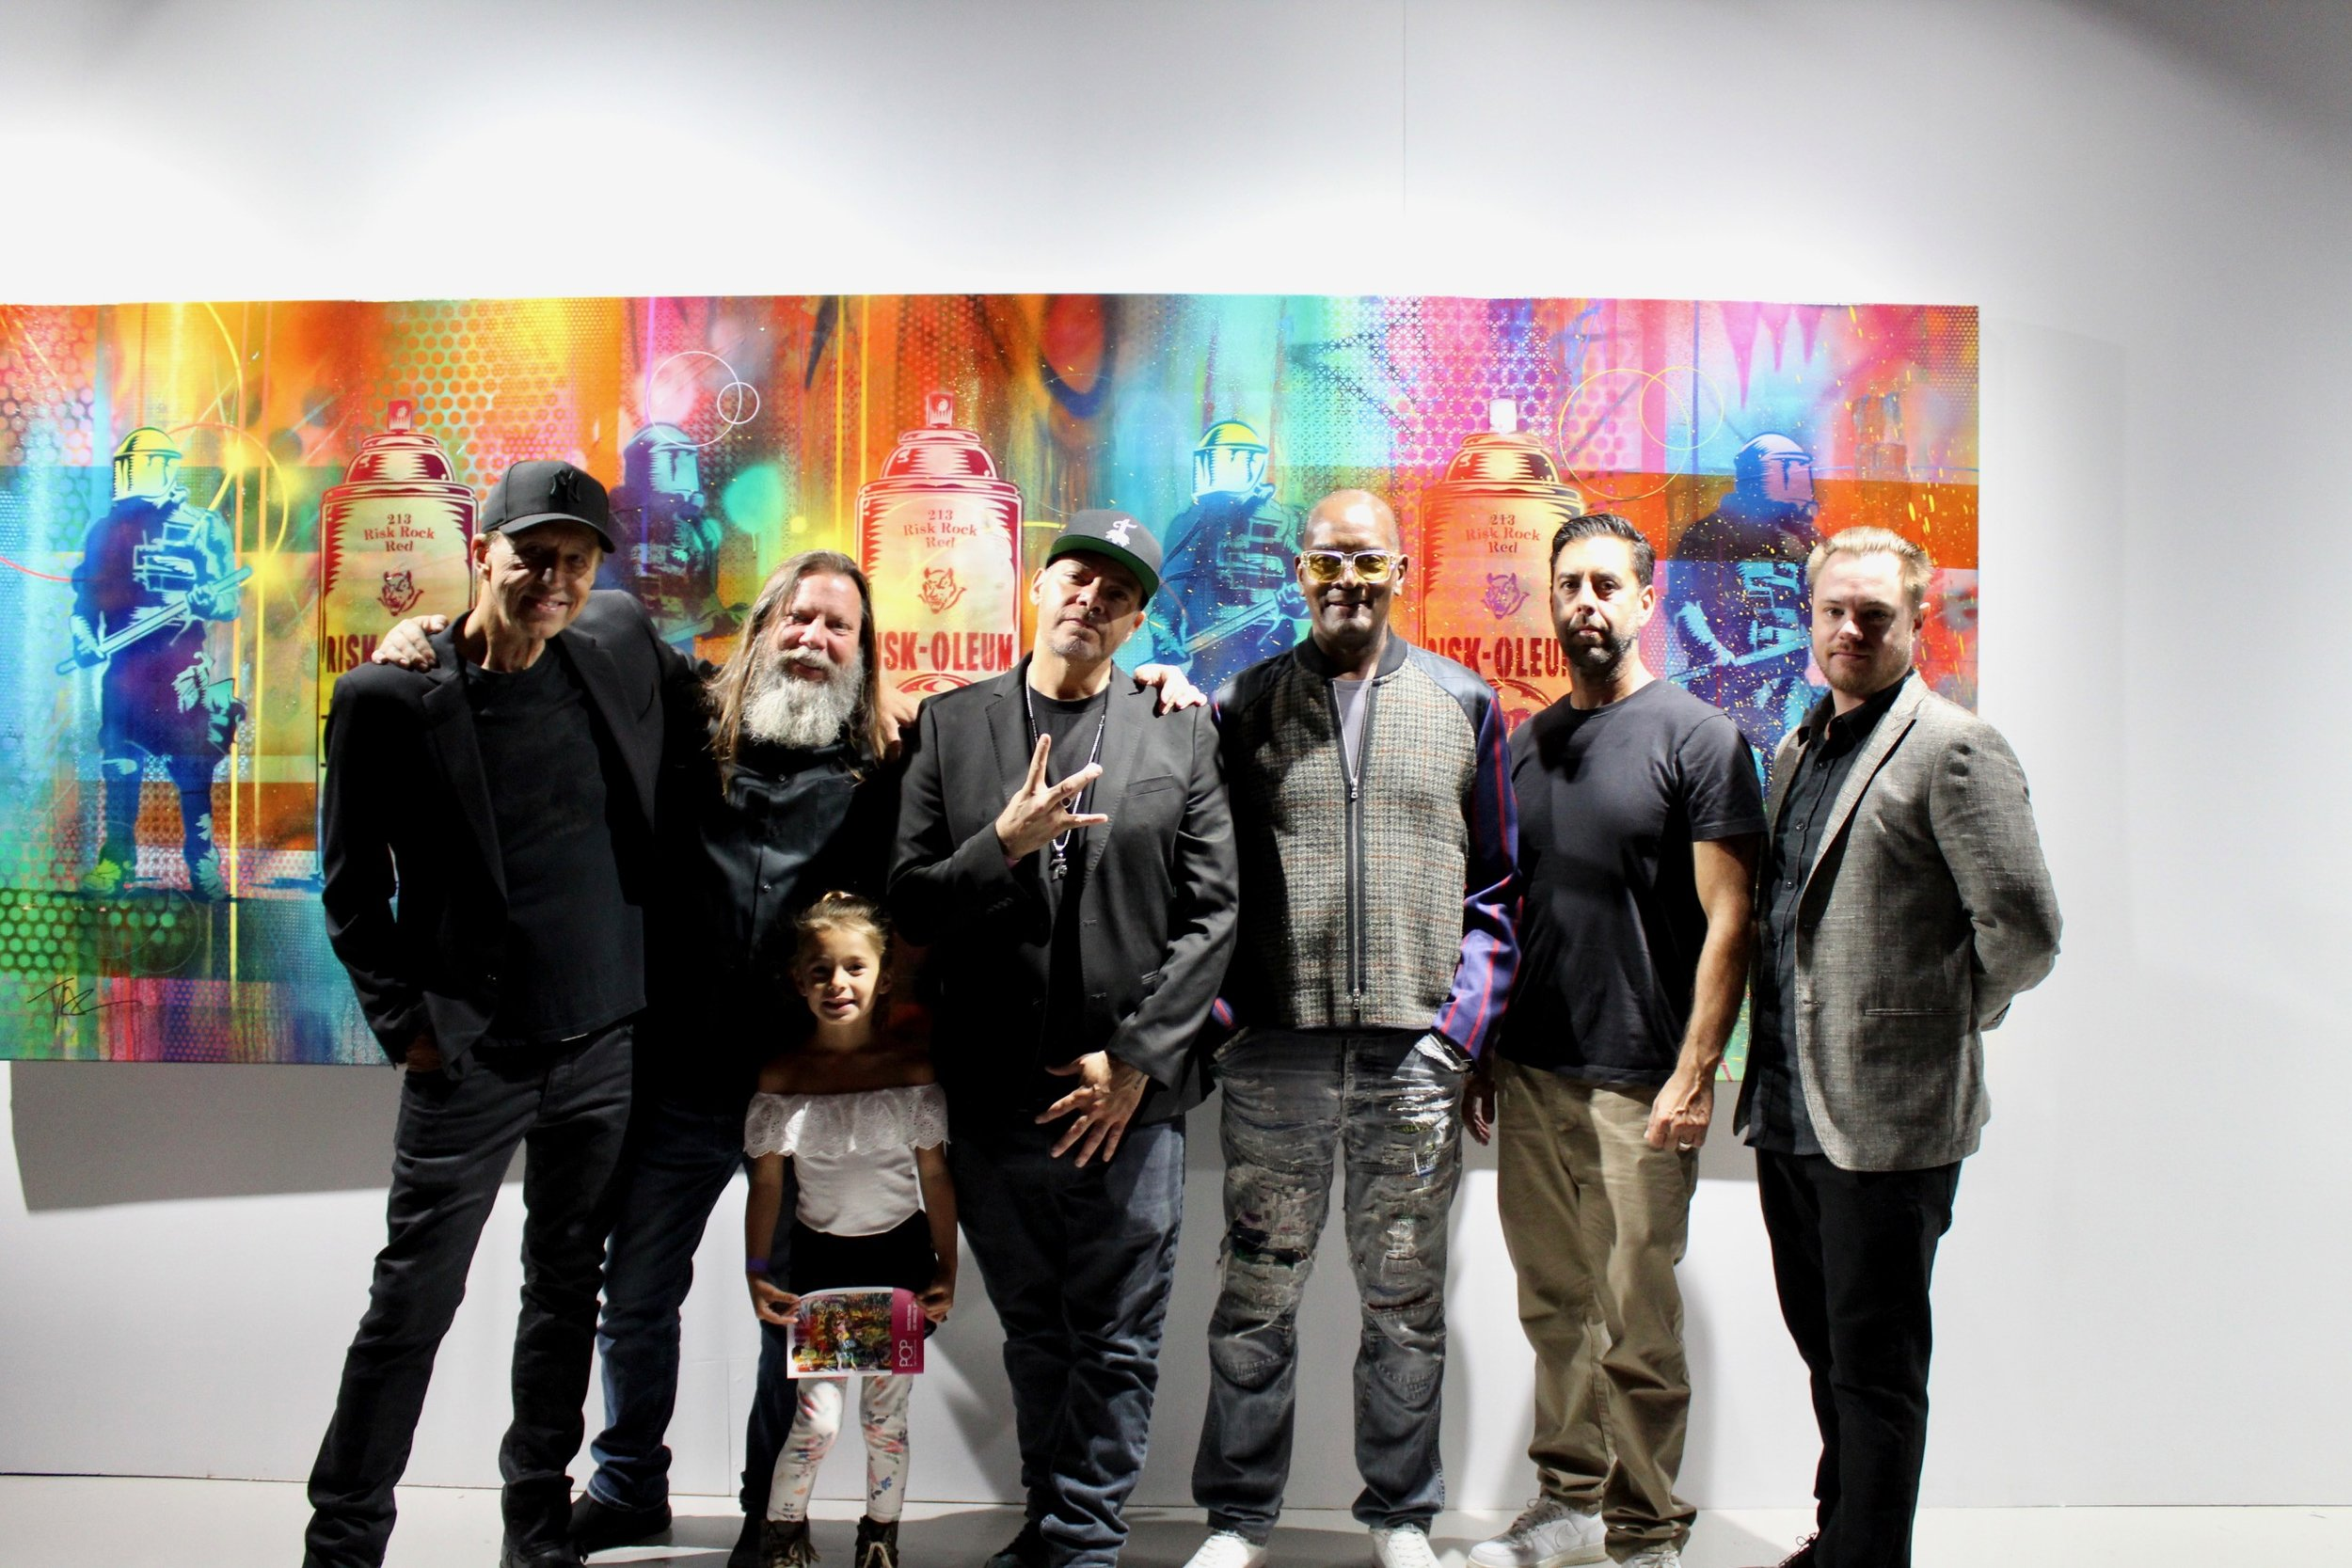 A talented group: Jim TAZ Evans, Risk Rock, Eddie Donaldson, Dennis Morris, Josh Levine, and others (we did inform Mike Shinoda that Risk was here)